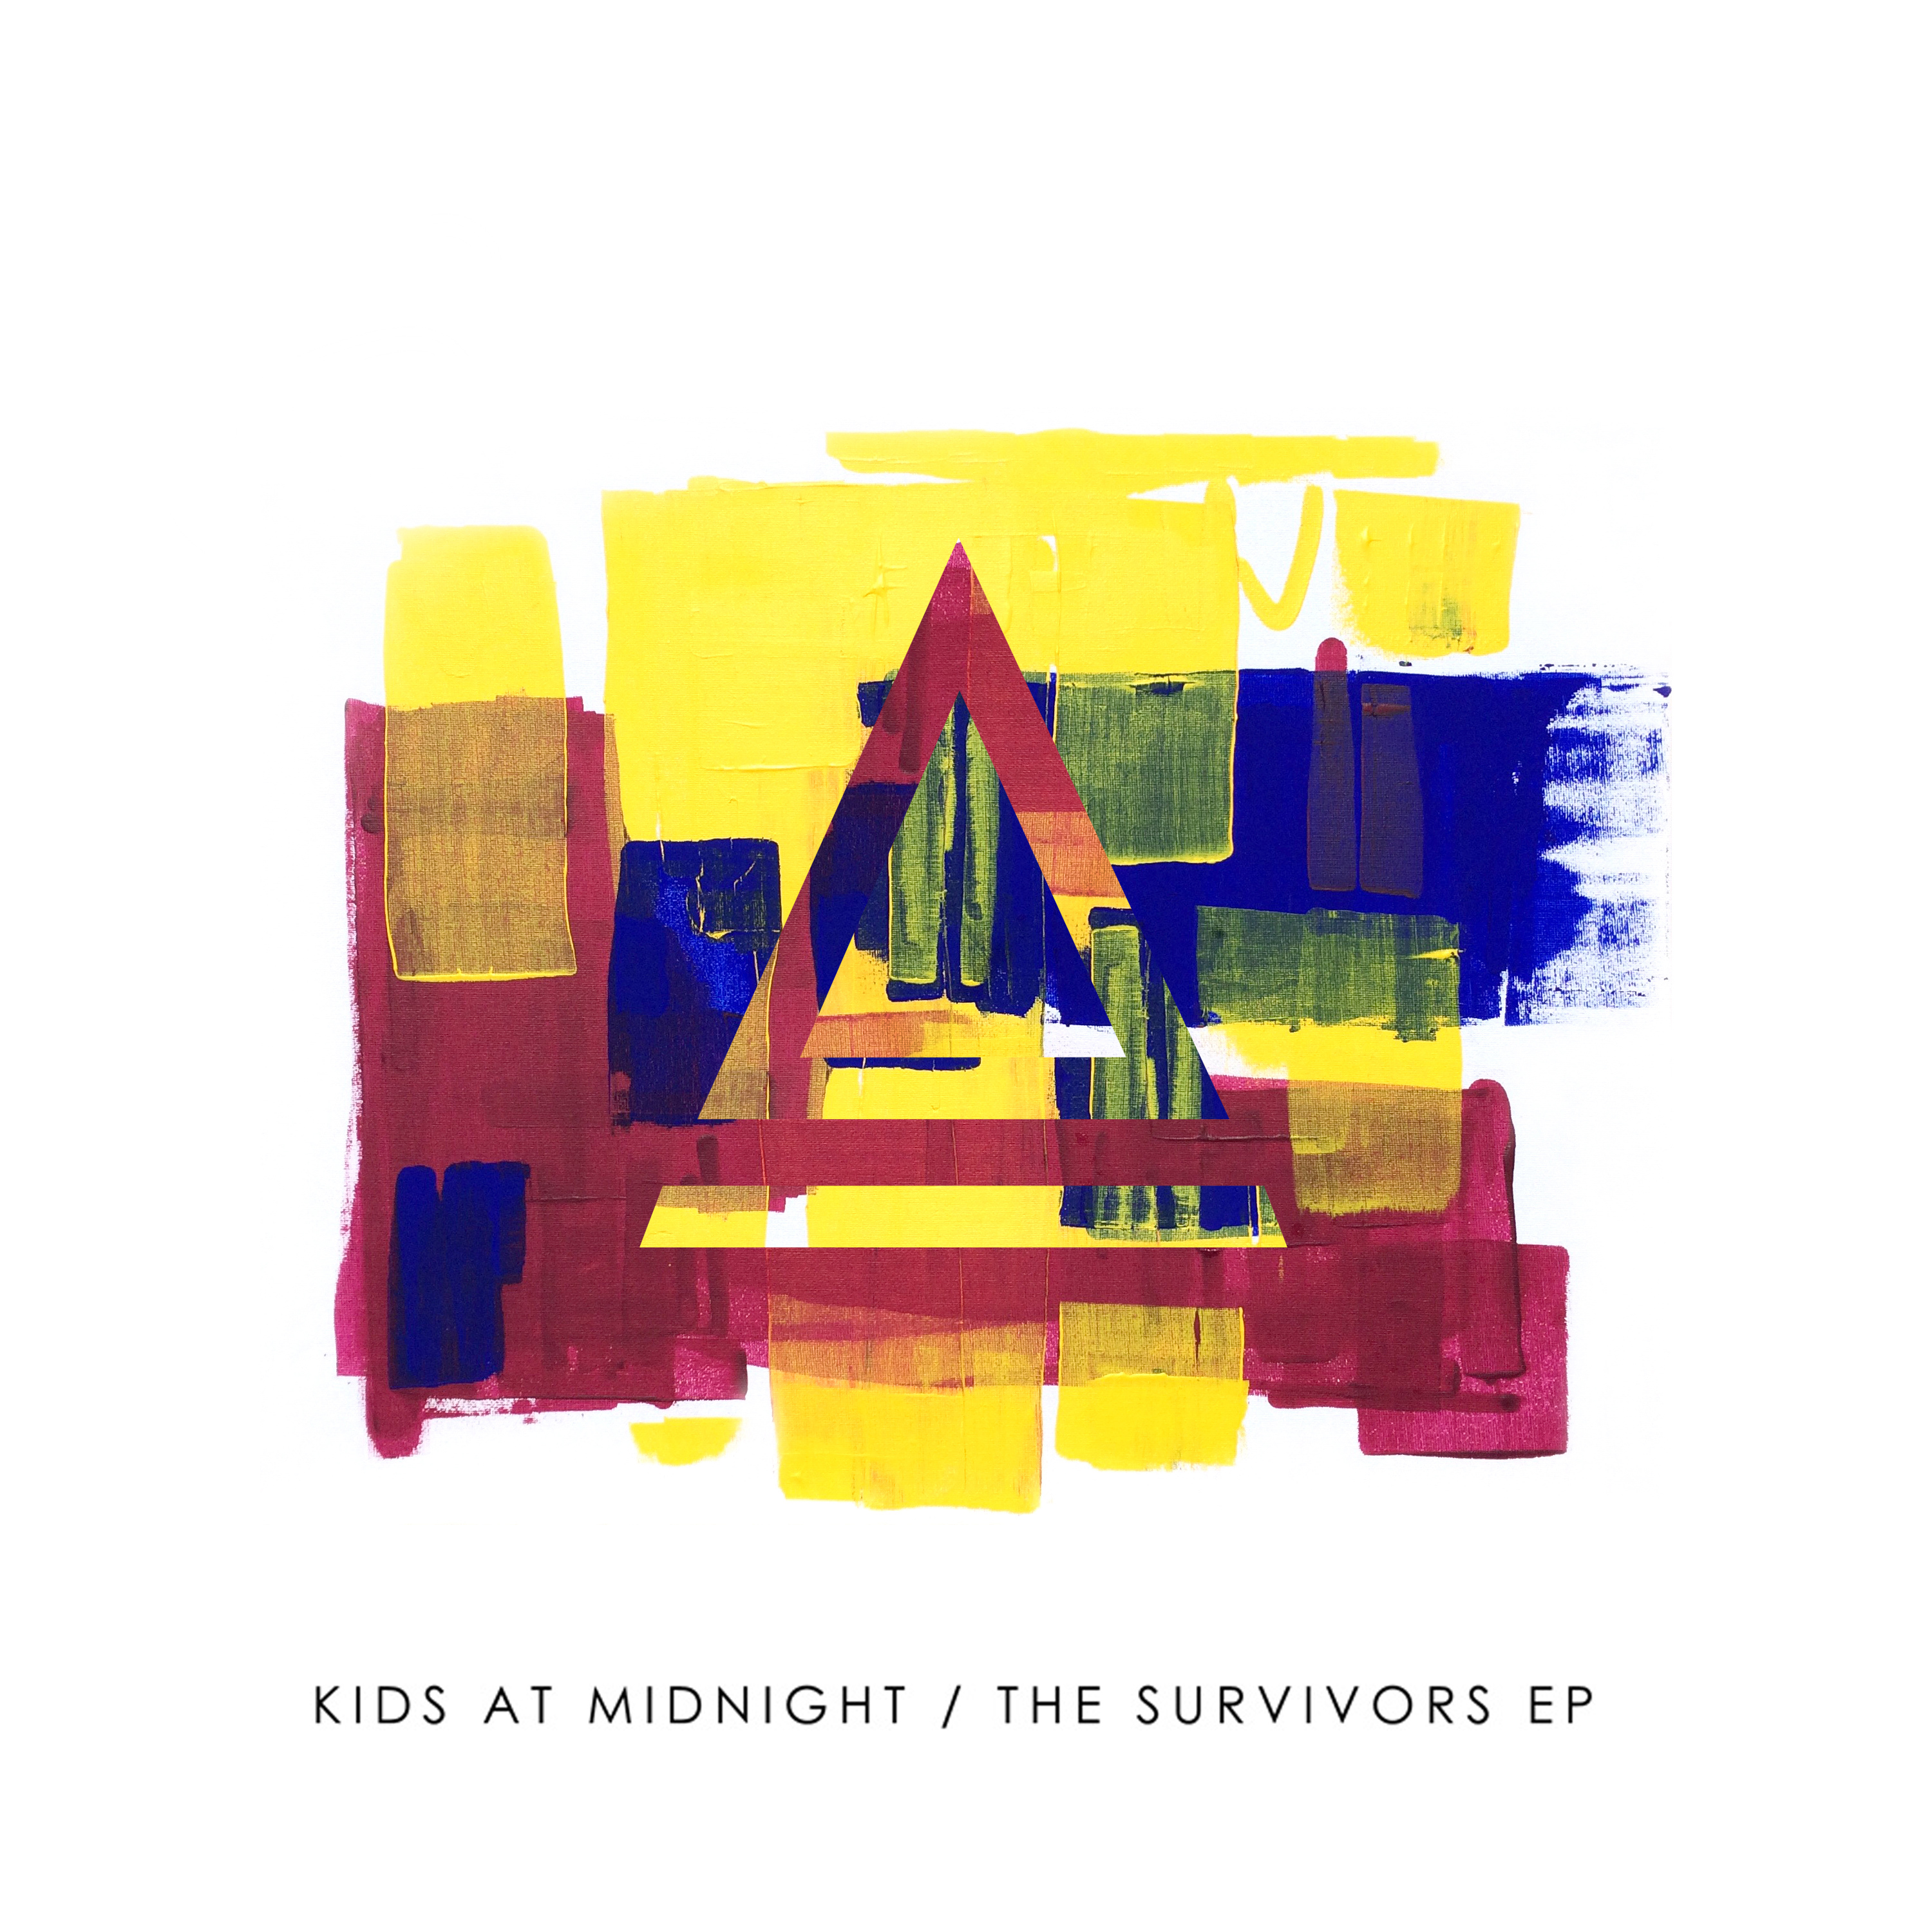 NEW RELEASE! Kids At Midnight: The Survivors - EP